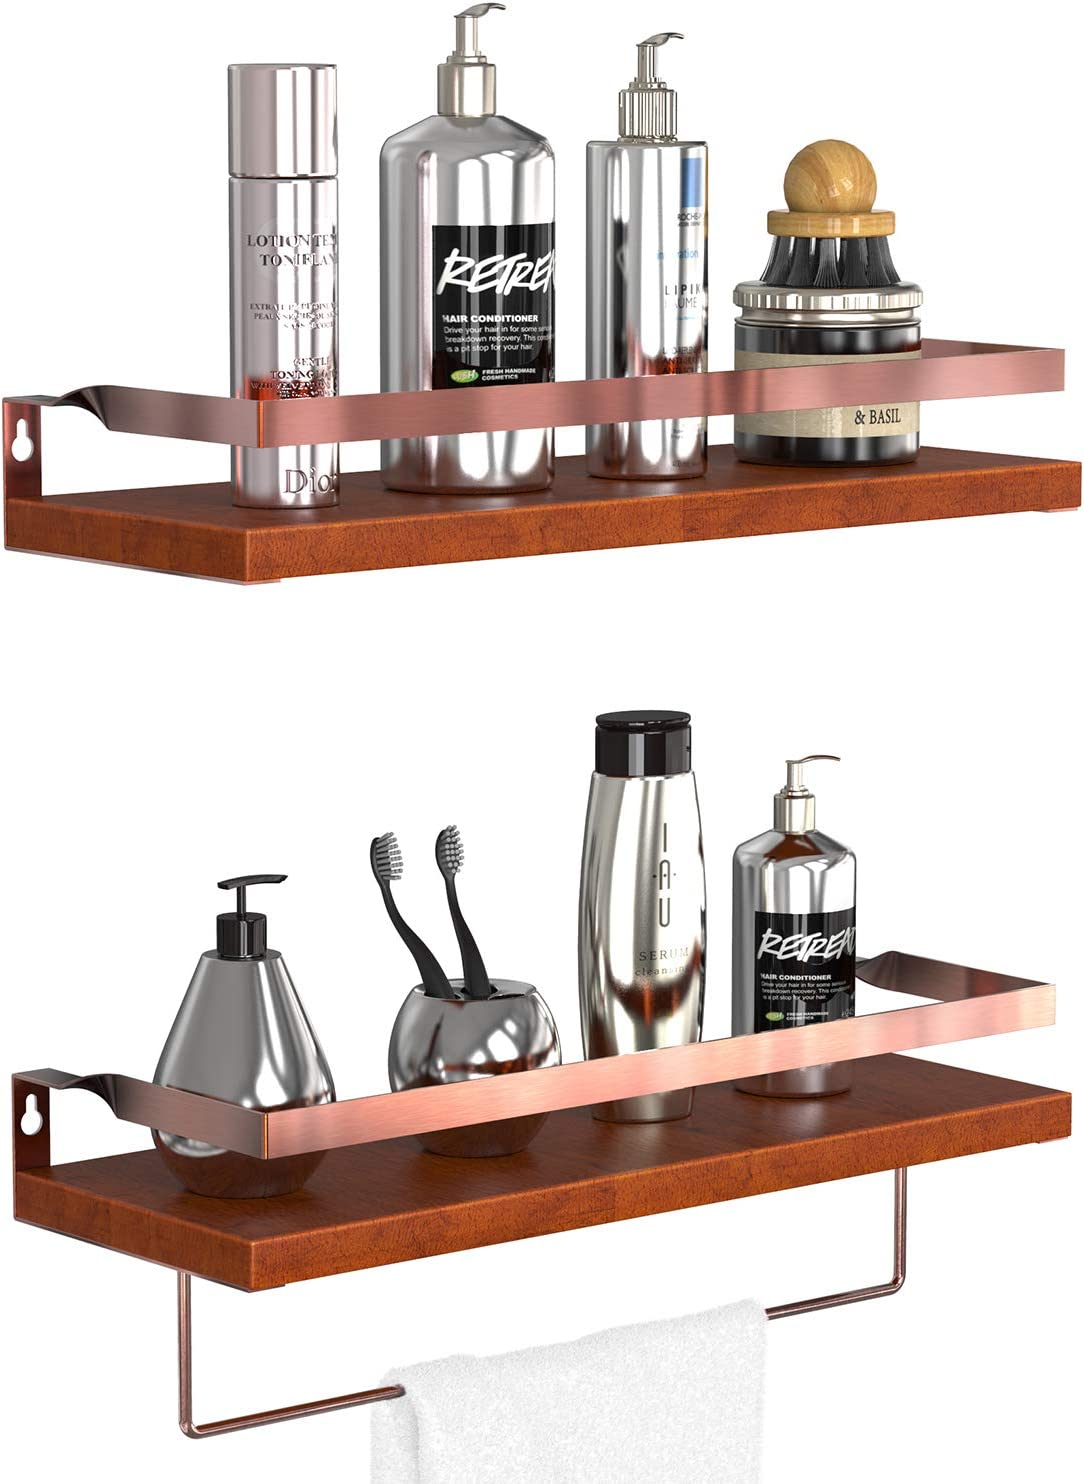 GeekDigg Floating Shelves Wall Mounted Set of 2, Pine Wood Wall Storage Shelves with Rose Gold Rails for Bedroom, Living Room, Bathroom, Kitchen, Office and More Carbonized Black